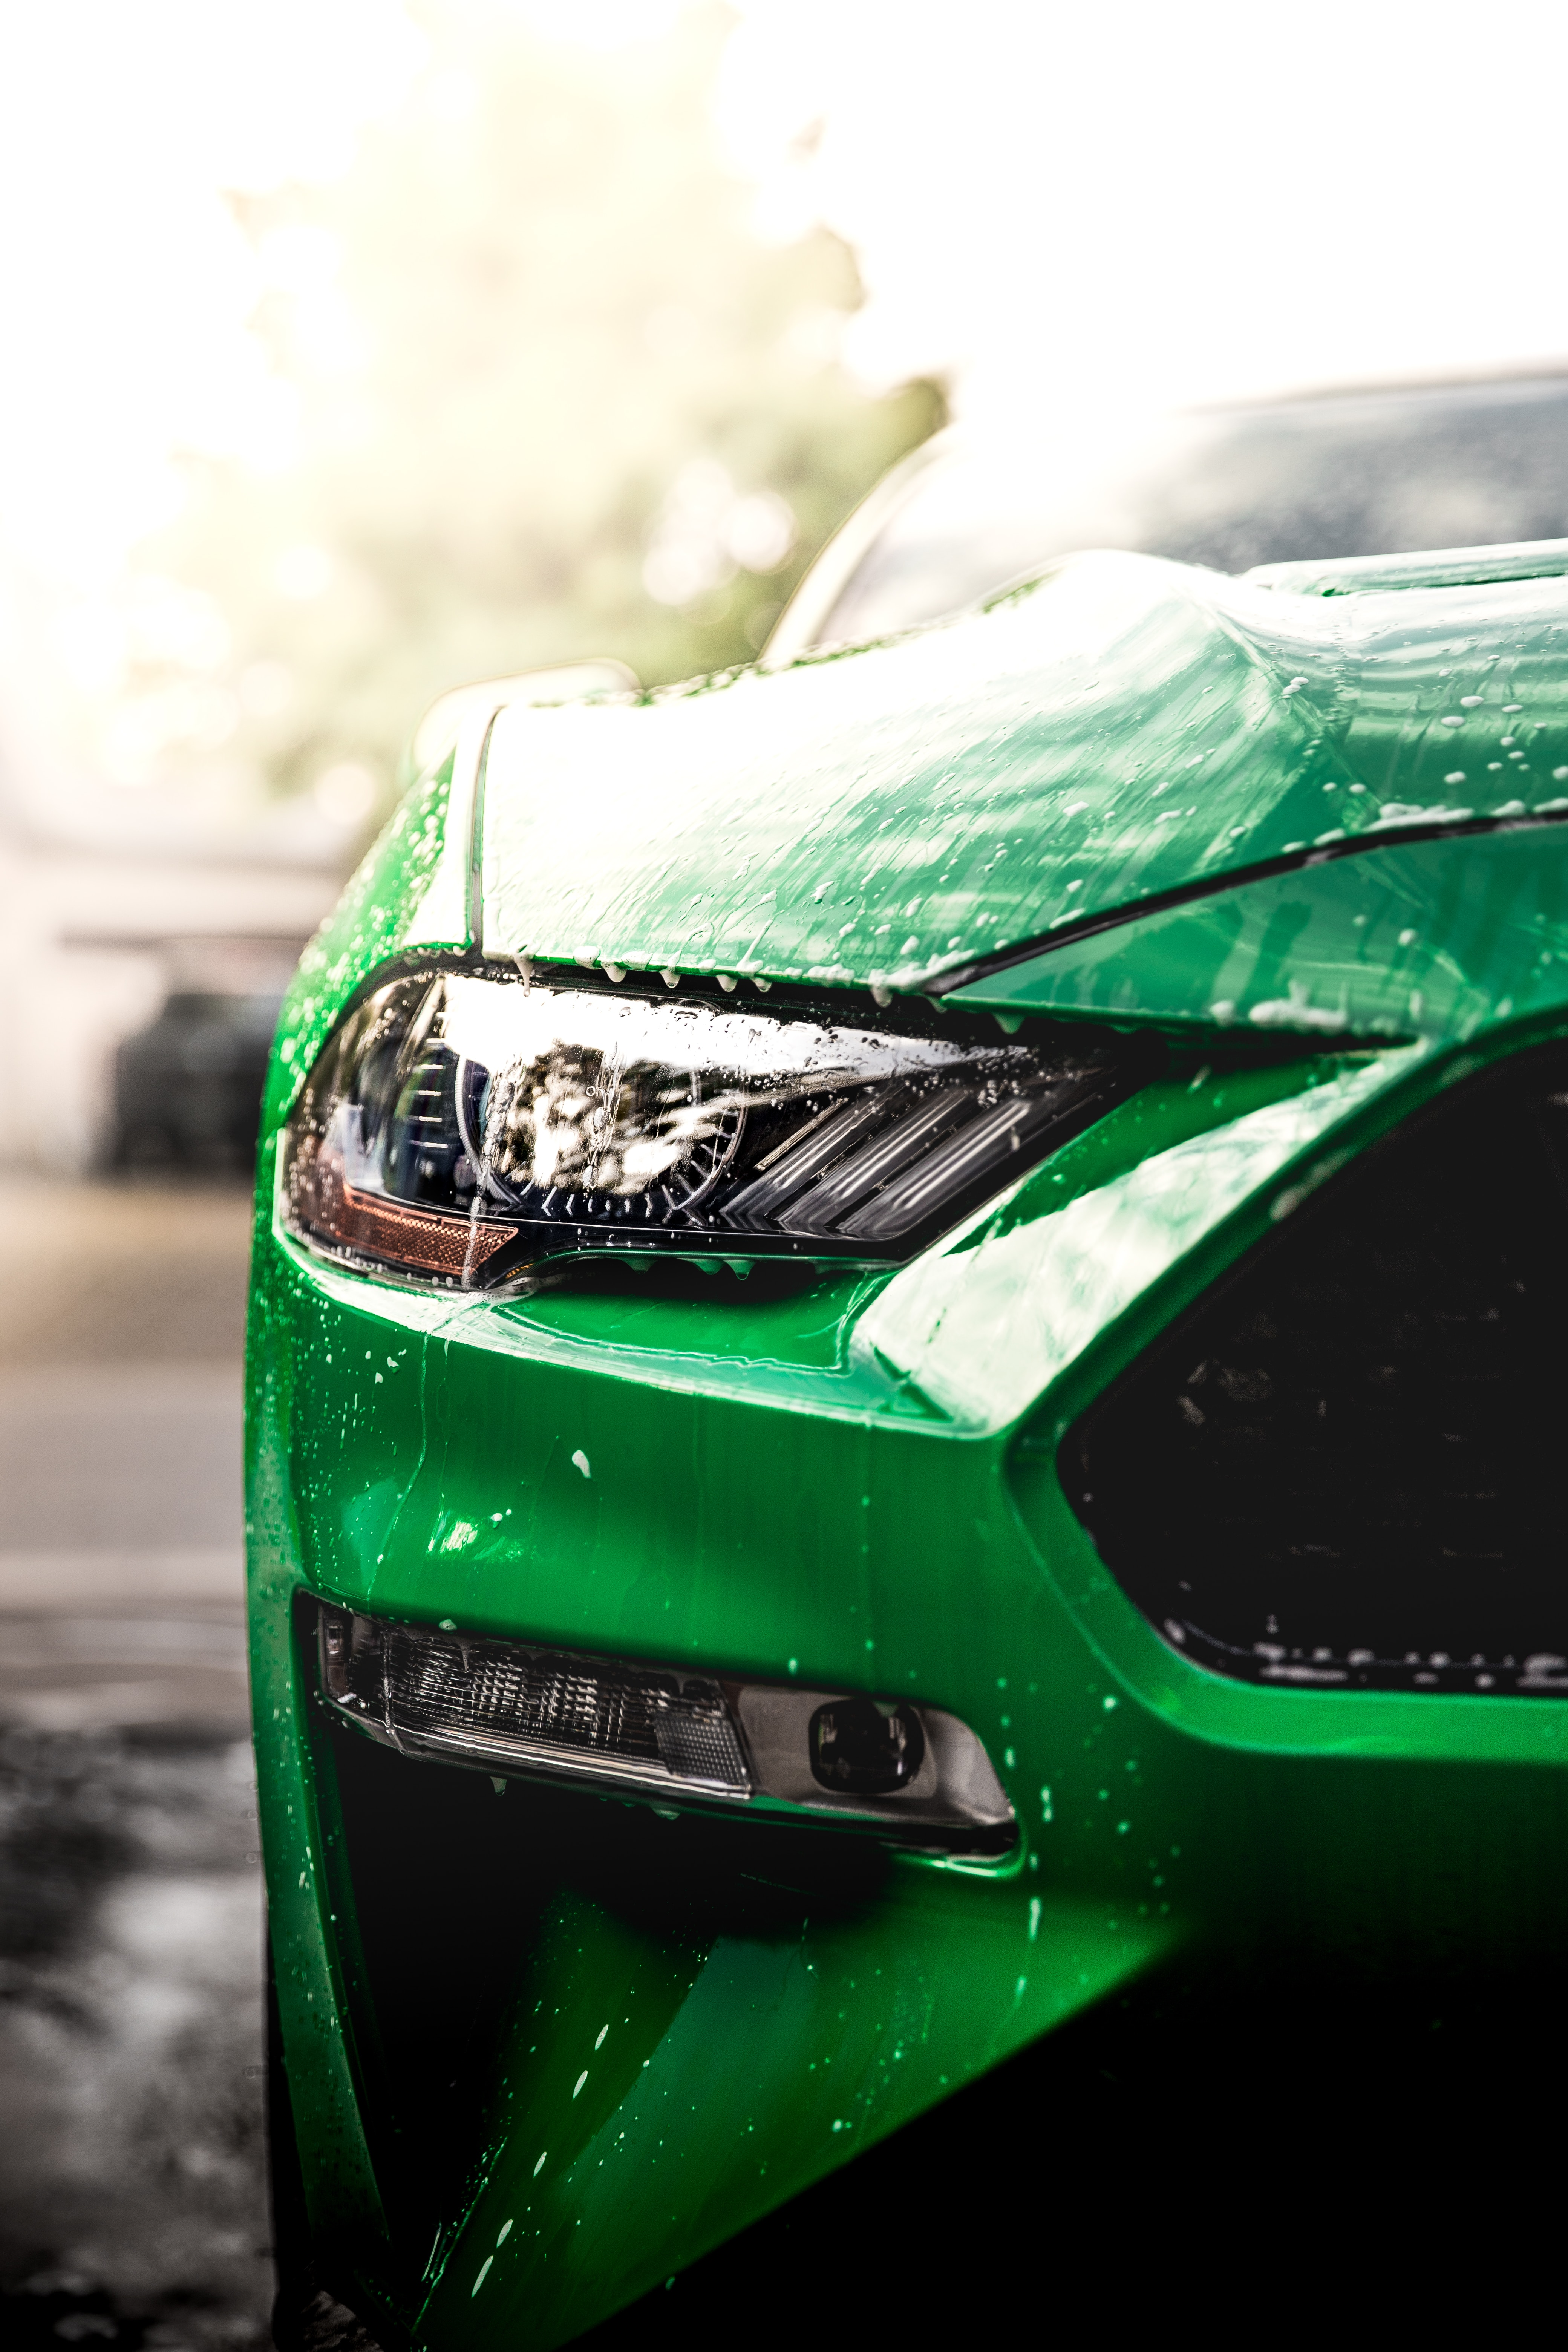 139799 Screensavers and Wallpapers Wet for phone. Download Cars, Wet, Car, Front View, Machine, Headlight pictures for free